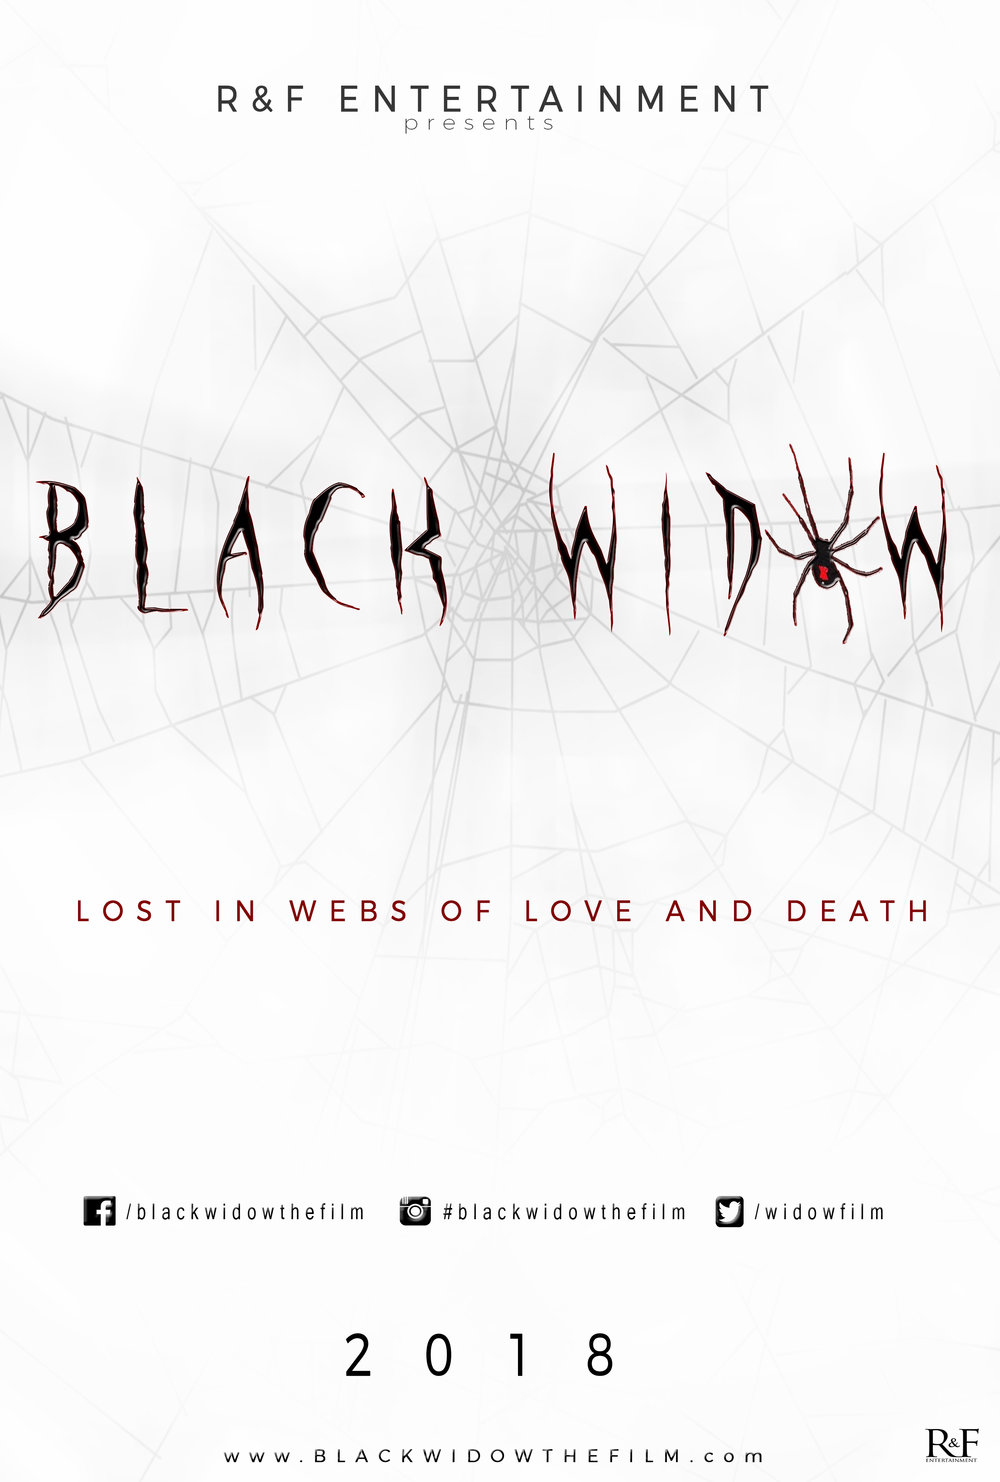 BLACK WIDOW THE FILM OFFICIAL MOVIE TEASER POSTER RFE RFENTERTAINMENT